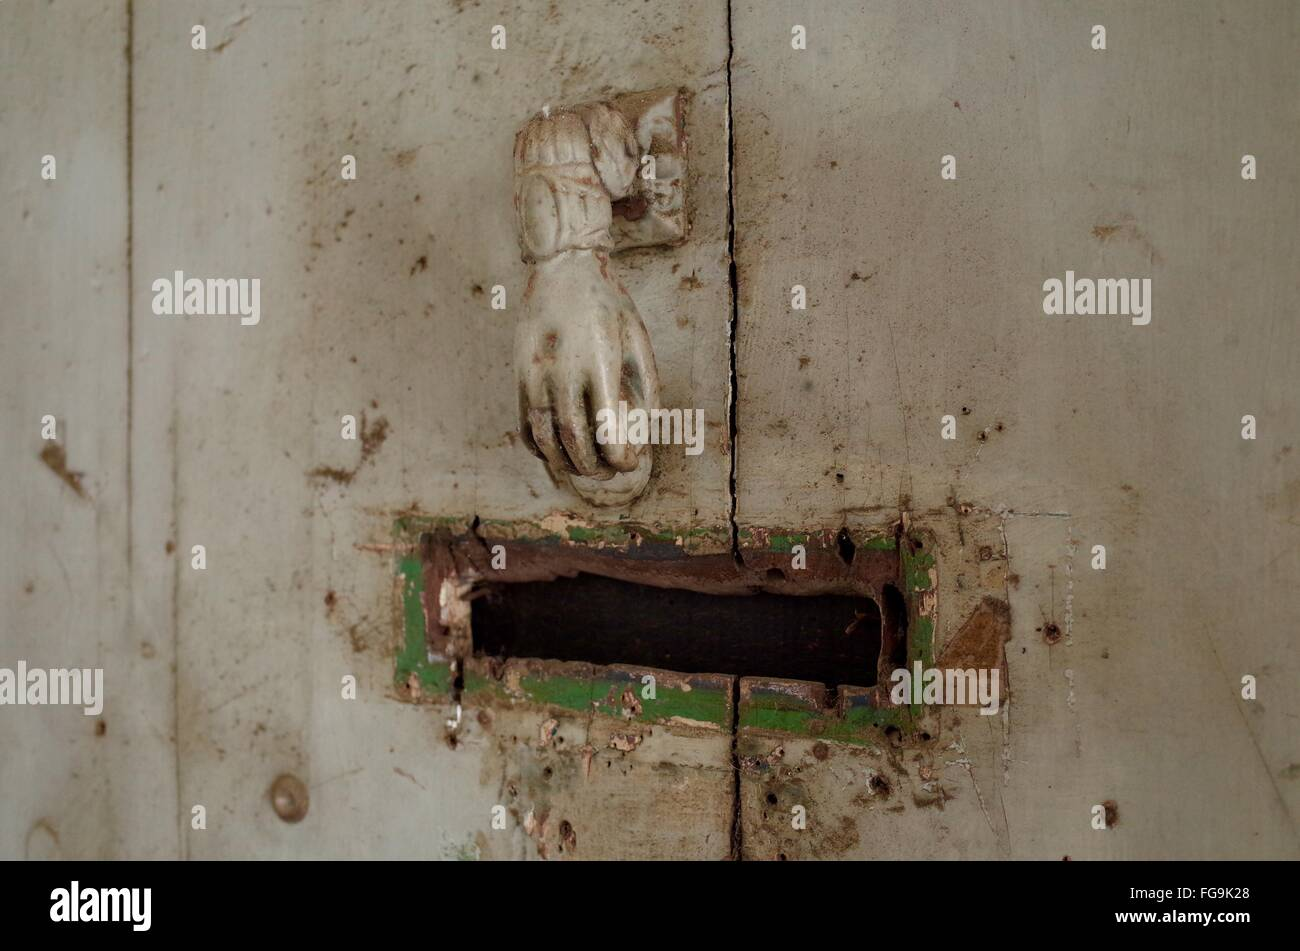 Old-Fashioned Doorknob And Mail Slot On Door - Stock Image